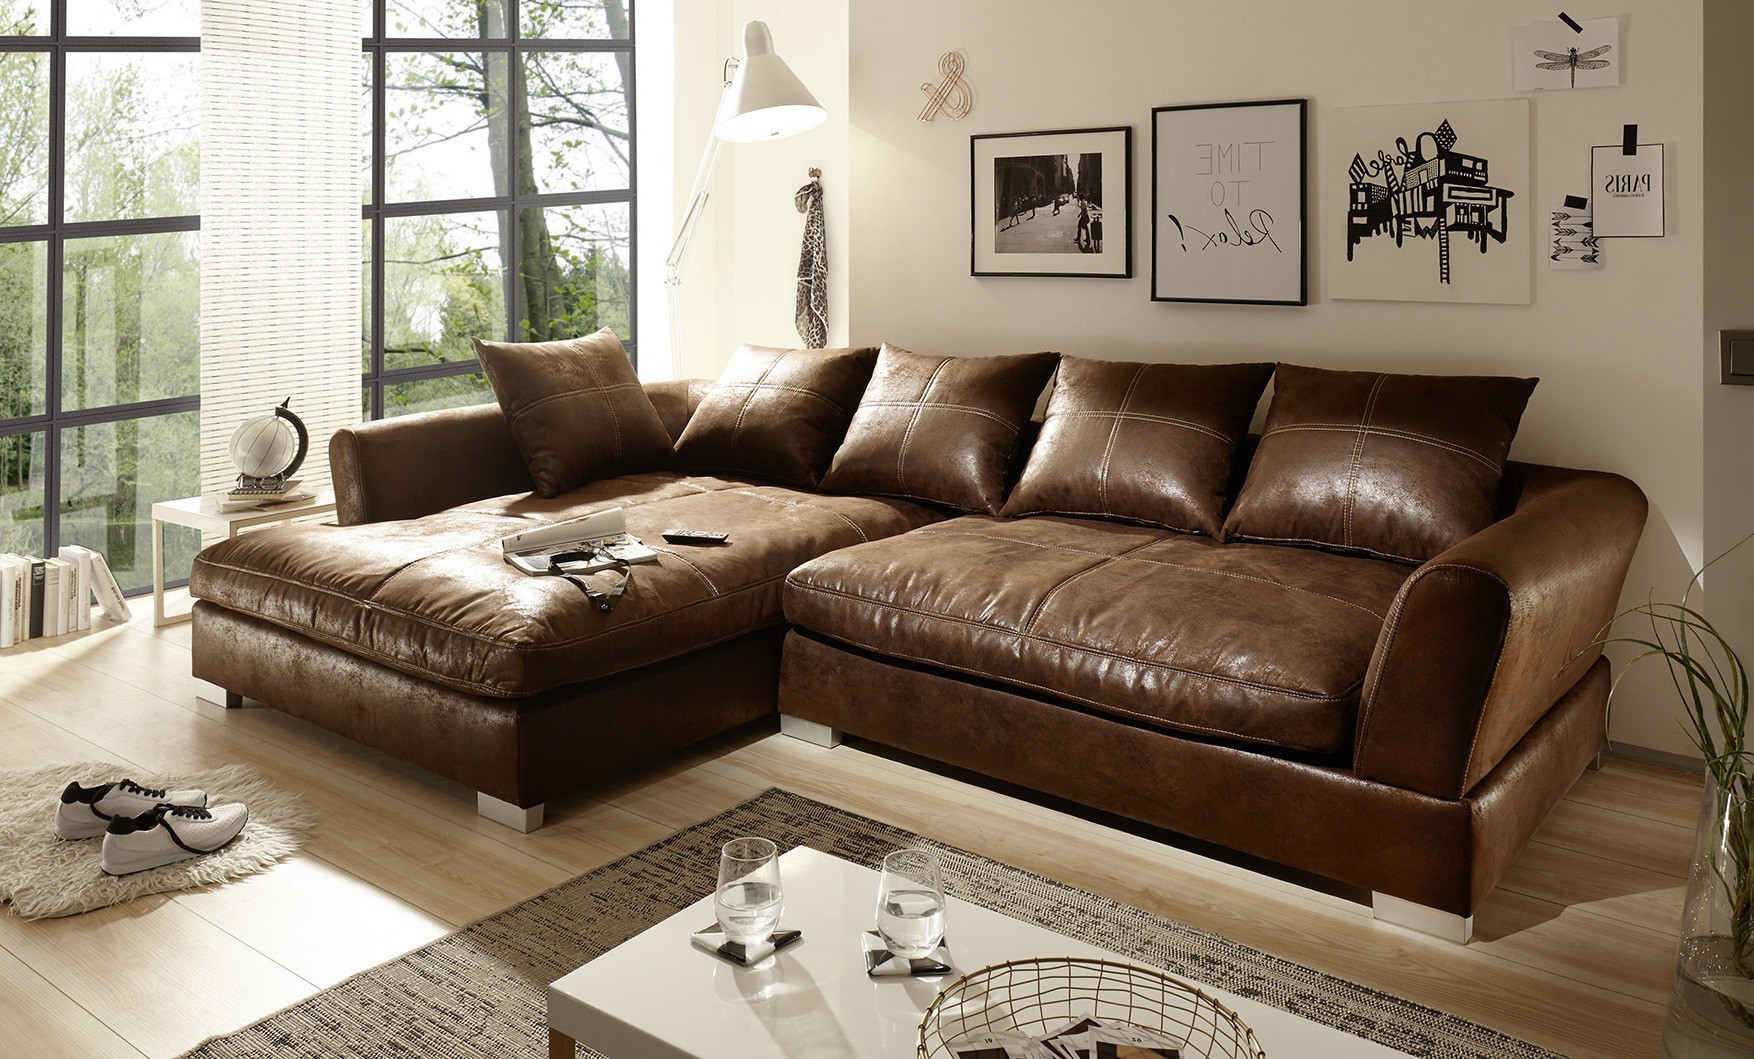 big-sofa-polstergarnitur-vintage-lederoptik-braun-anna-hannah-rana-collection.jpg